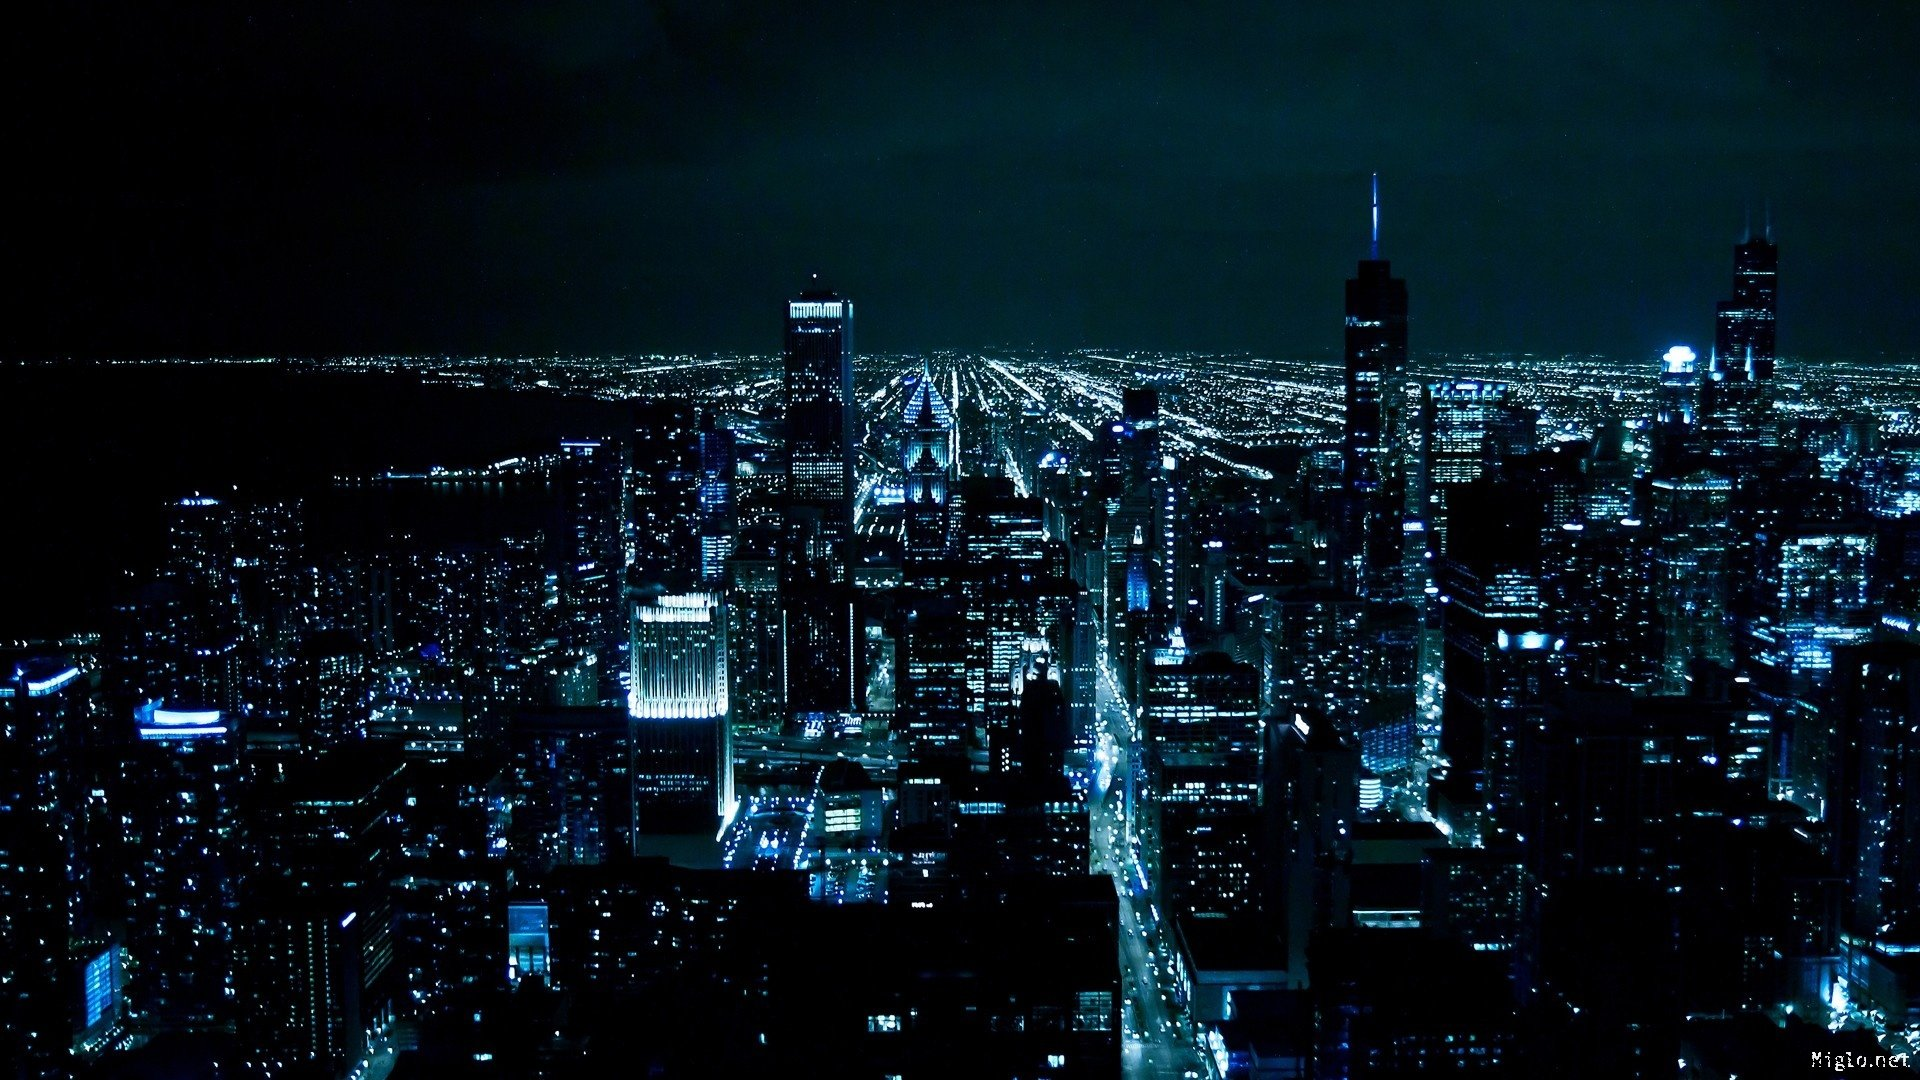 228 Chicago Hd Wallpapers Background Images Wallpaper Abyss